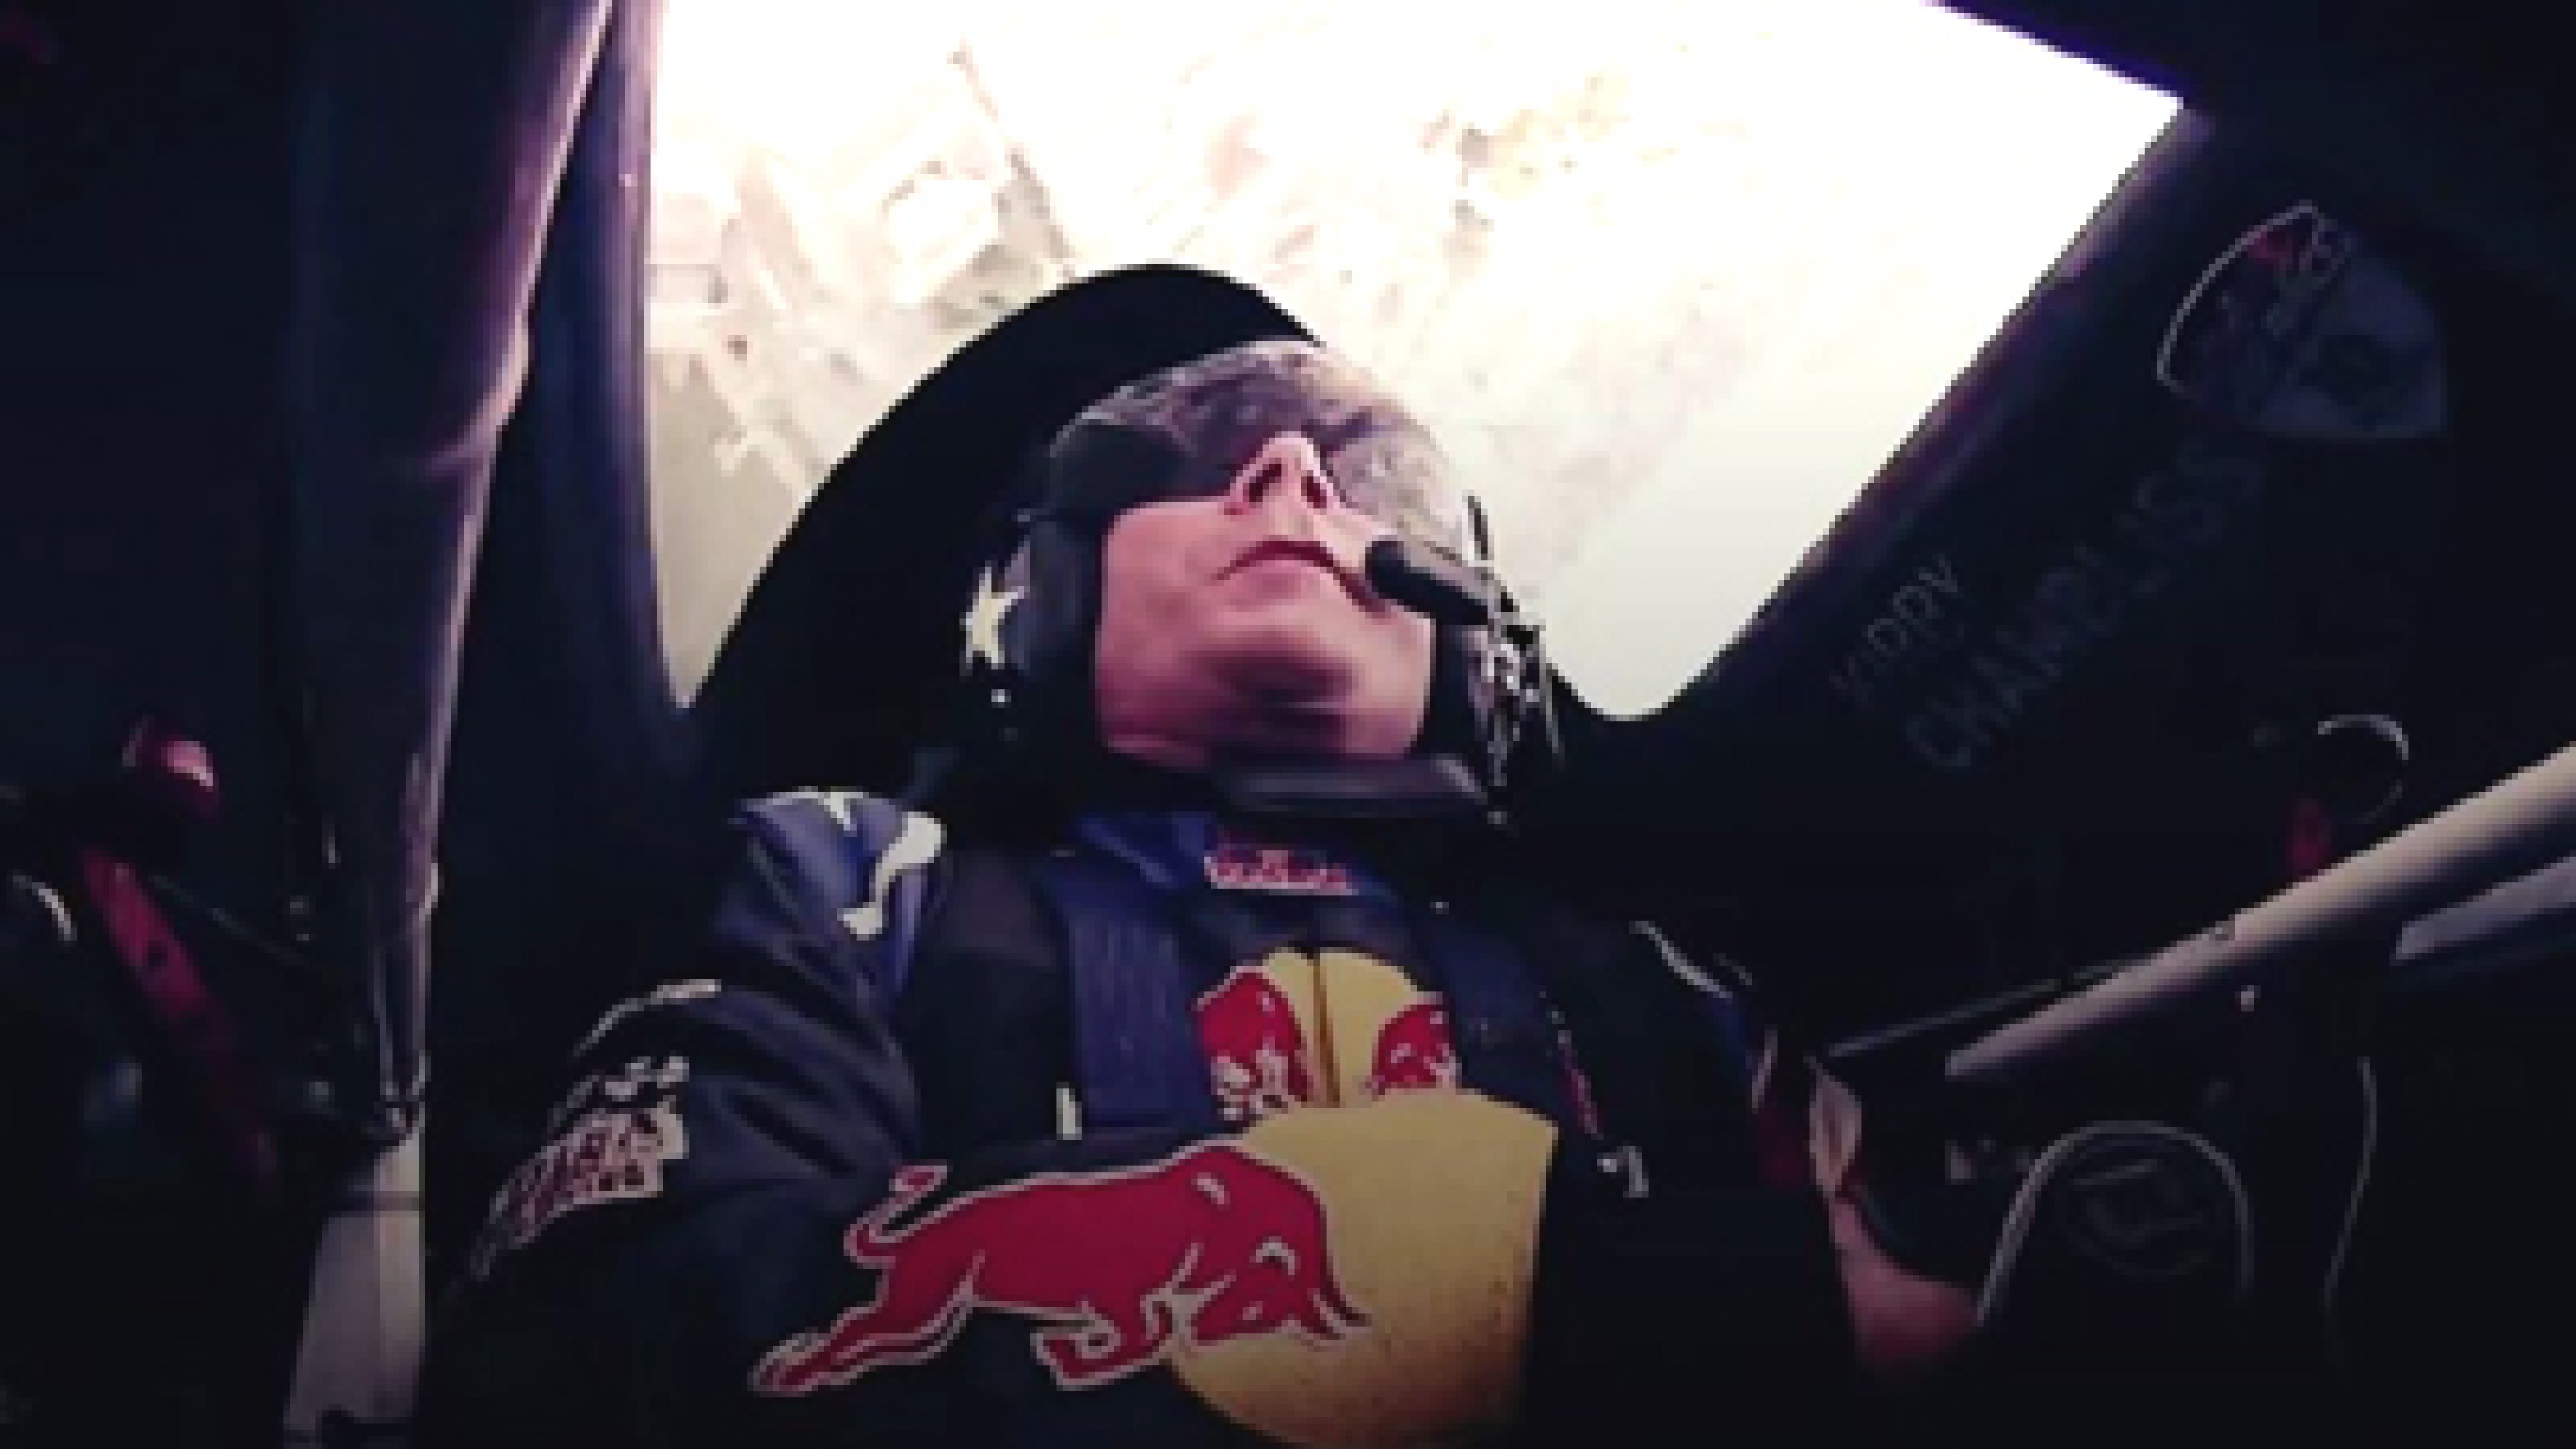 Red Bull Air Race pilot